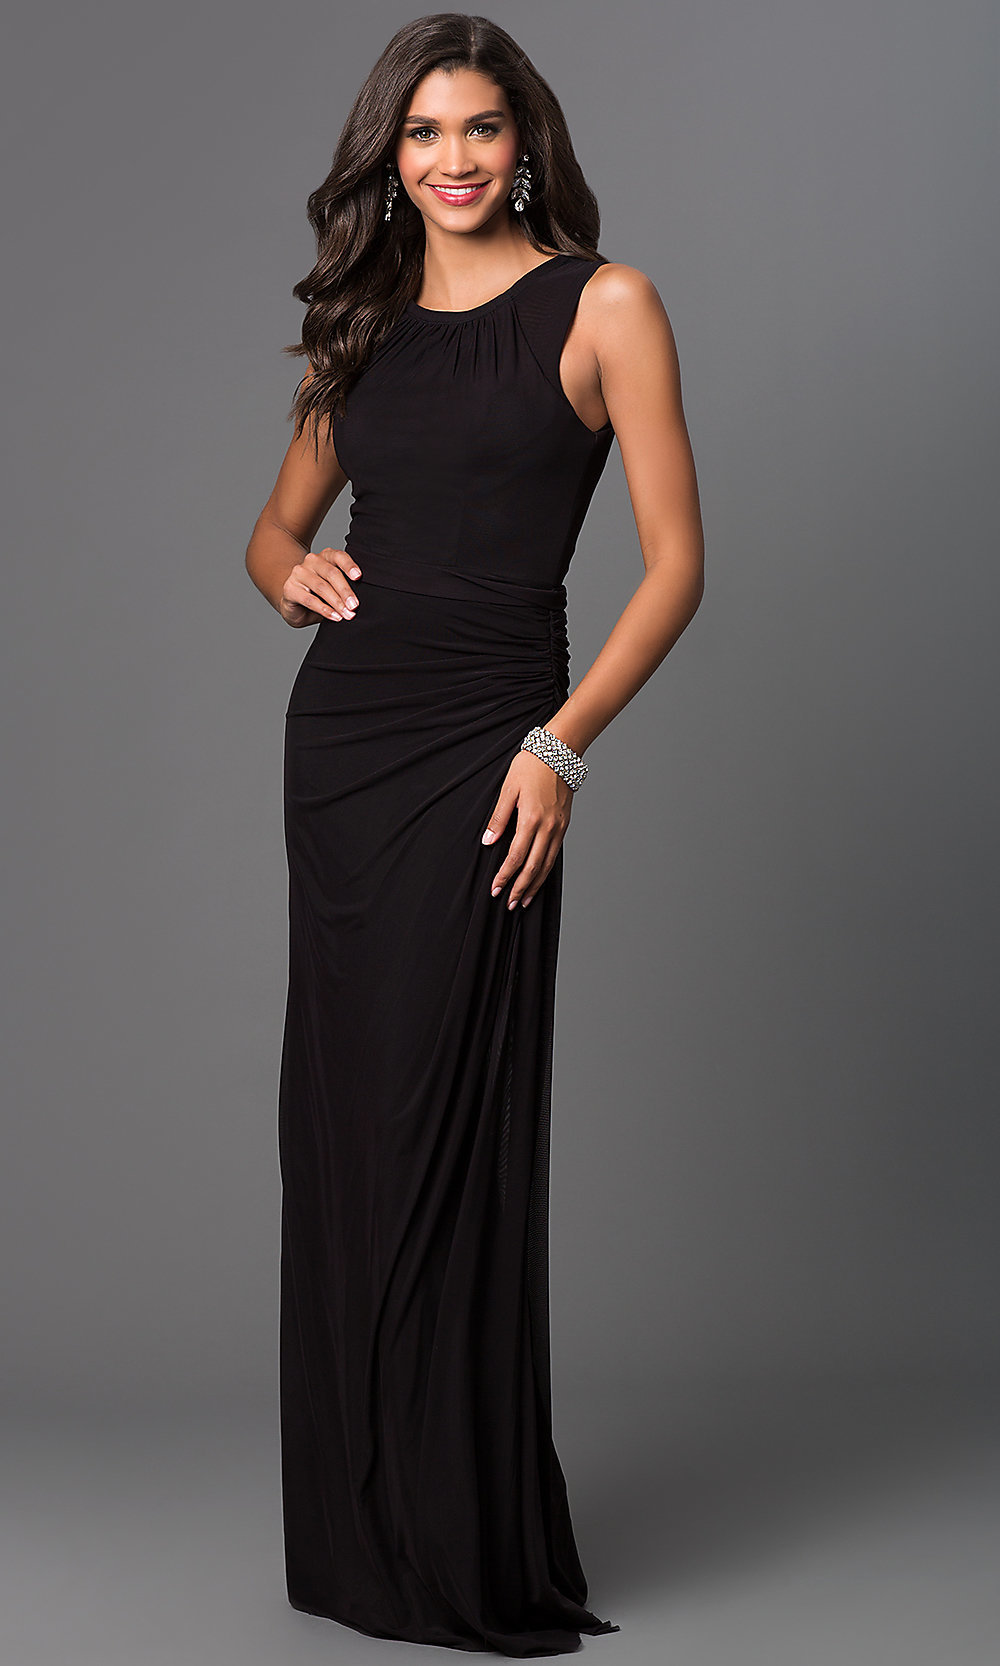 Sleeveless Long Ruched Prom Dress Promgirl